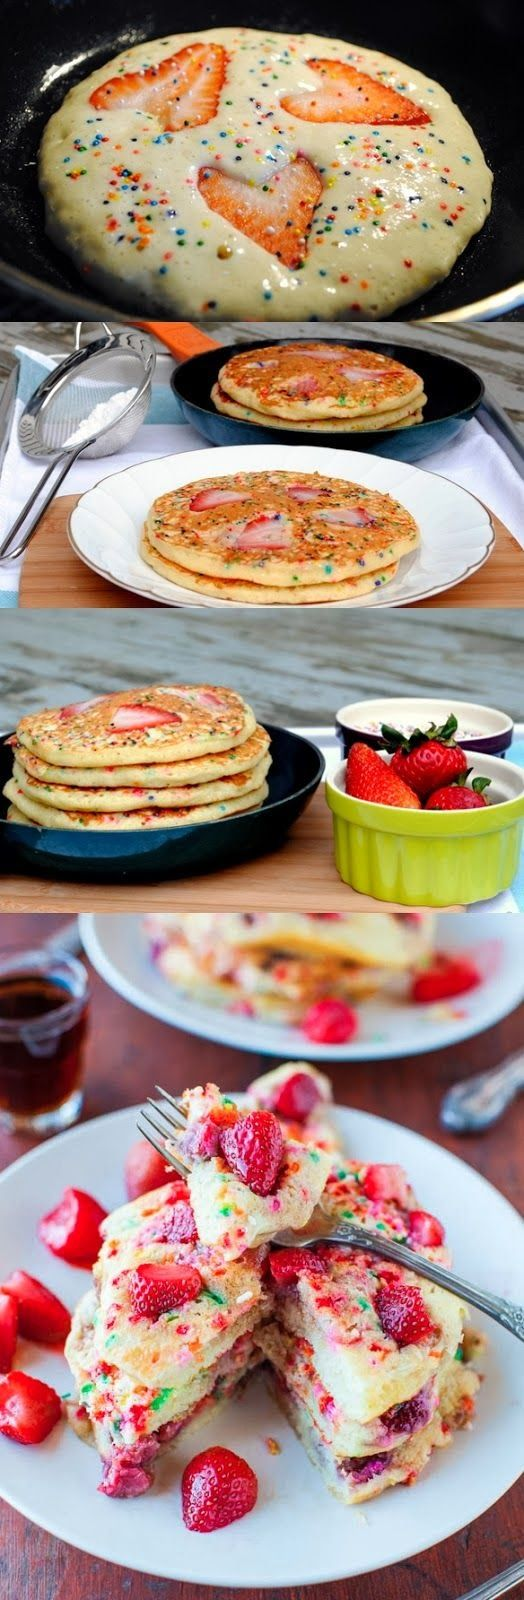 strawberry sprinkle pancakes